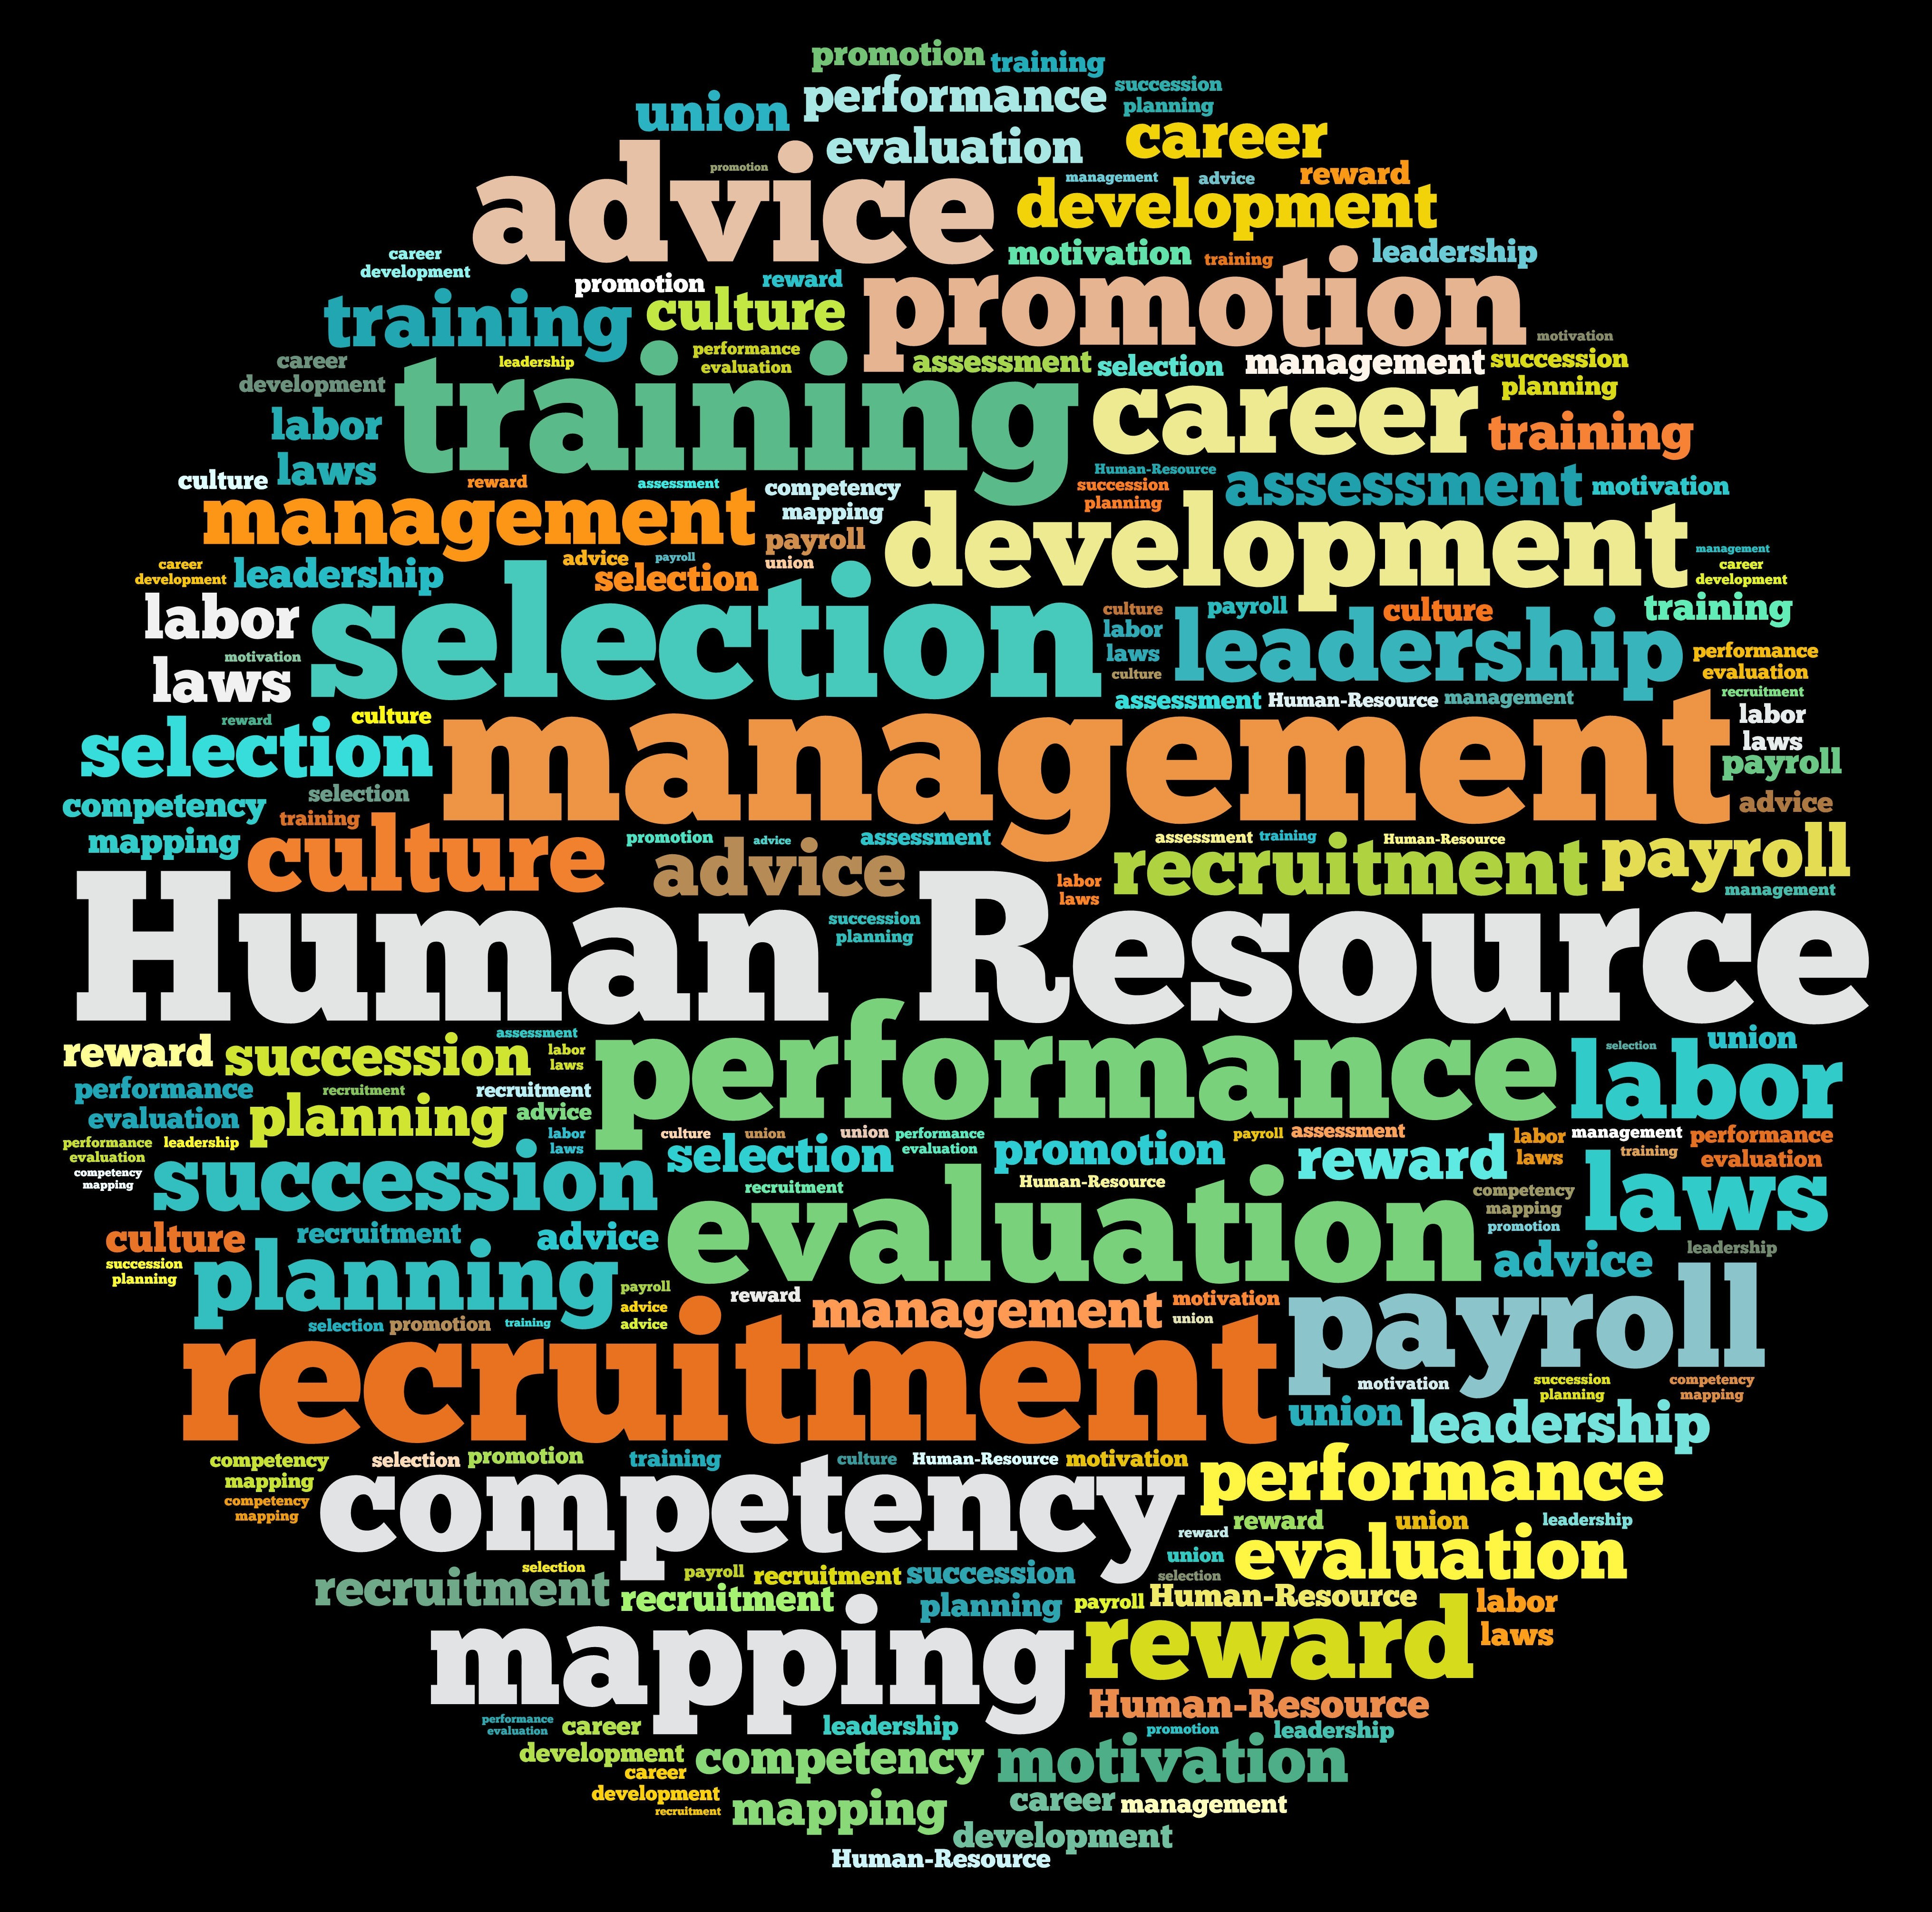 Human Resources: Talent Management